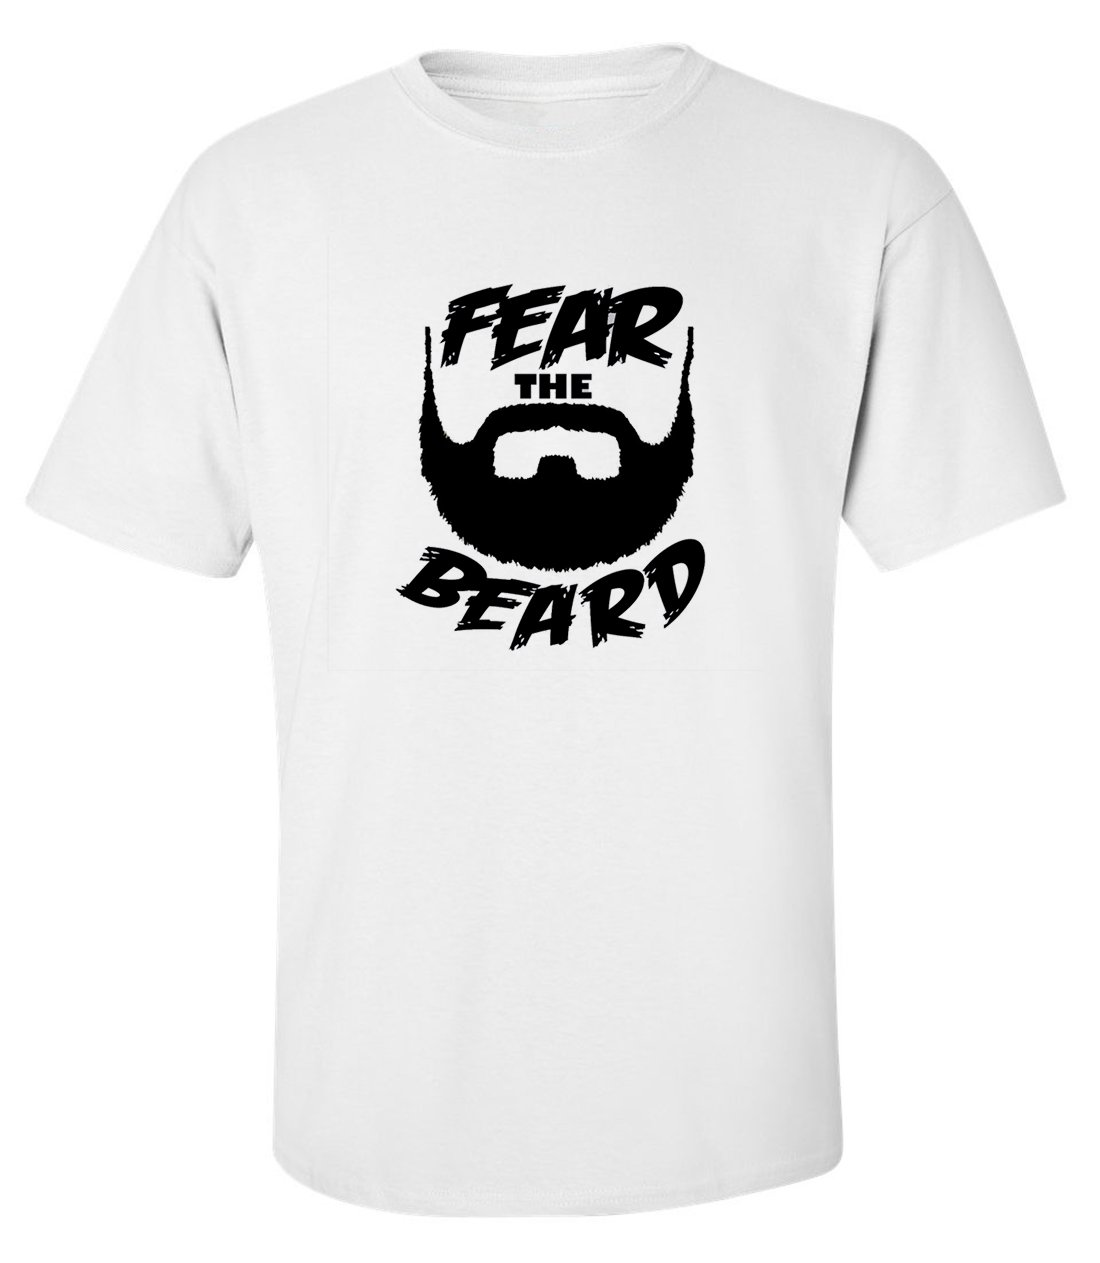 Fear the beard funny slogan men printed cotton white t-shirt size S